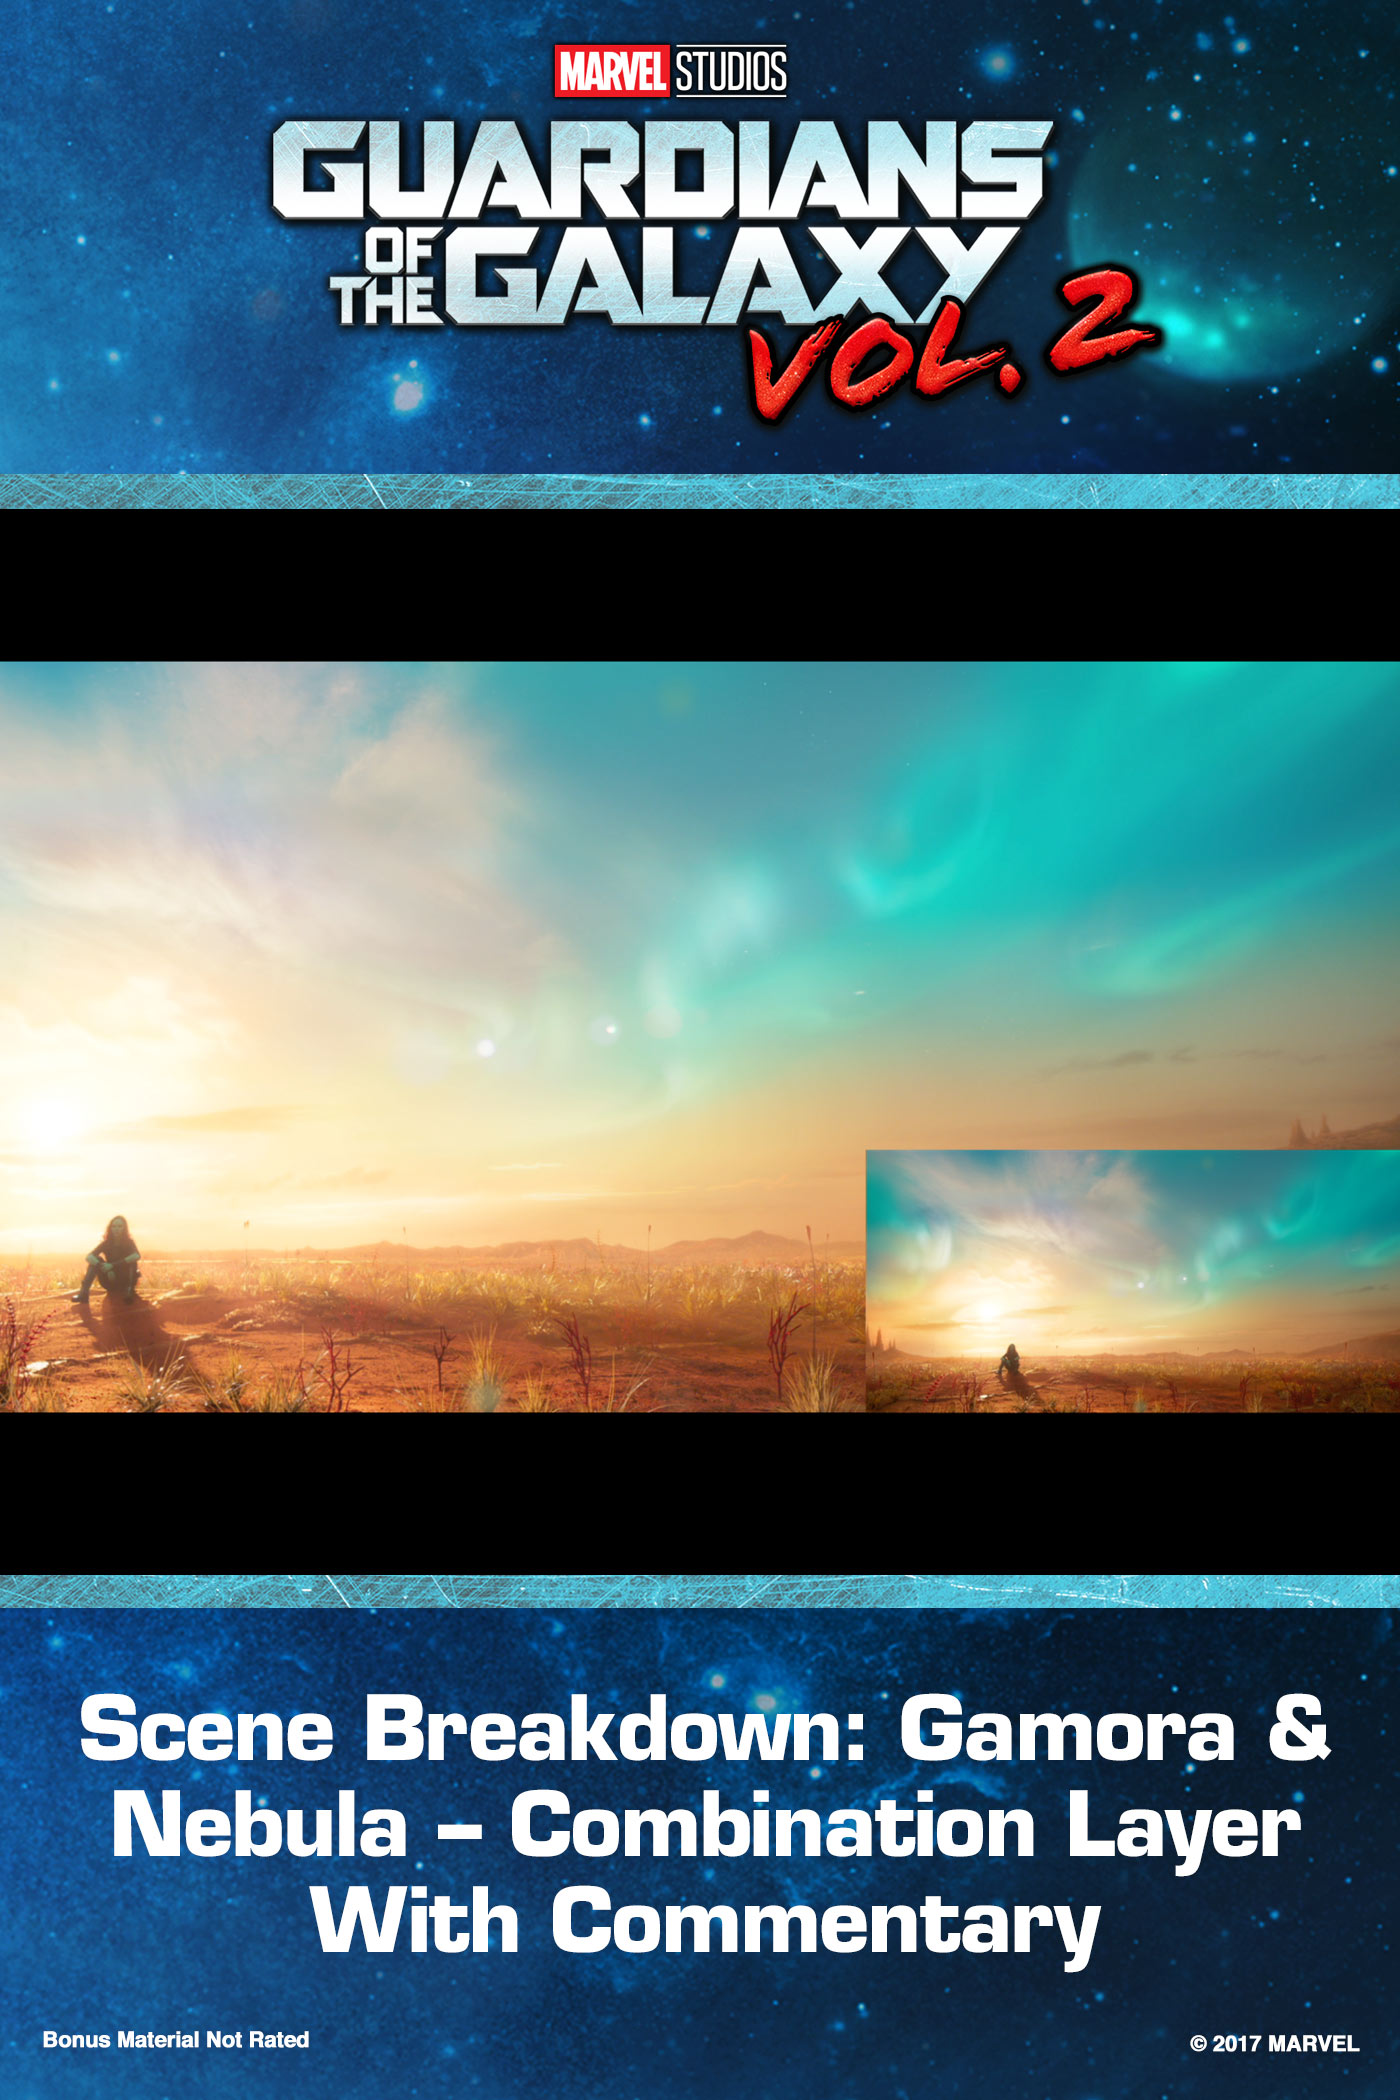 Scene Breakdown: Gamora & Nebula – Combination Layer With Commentary